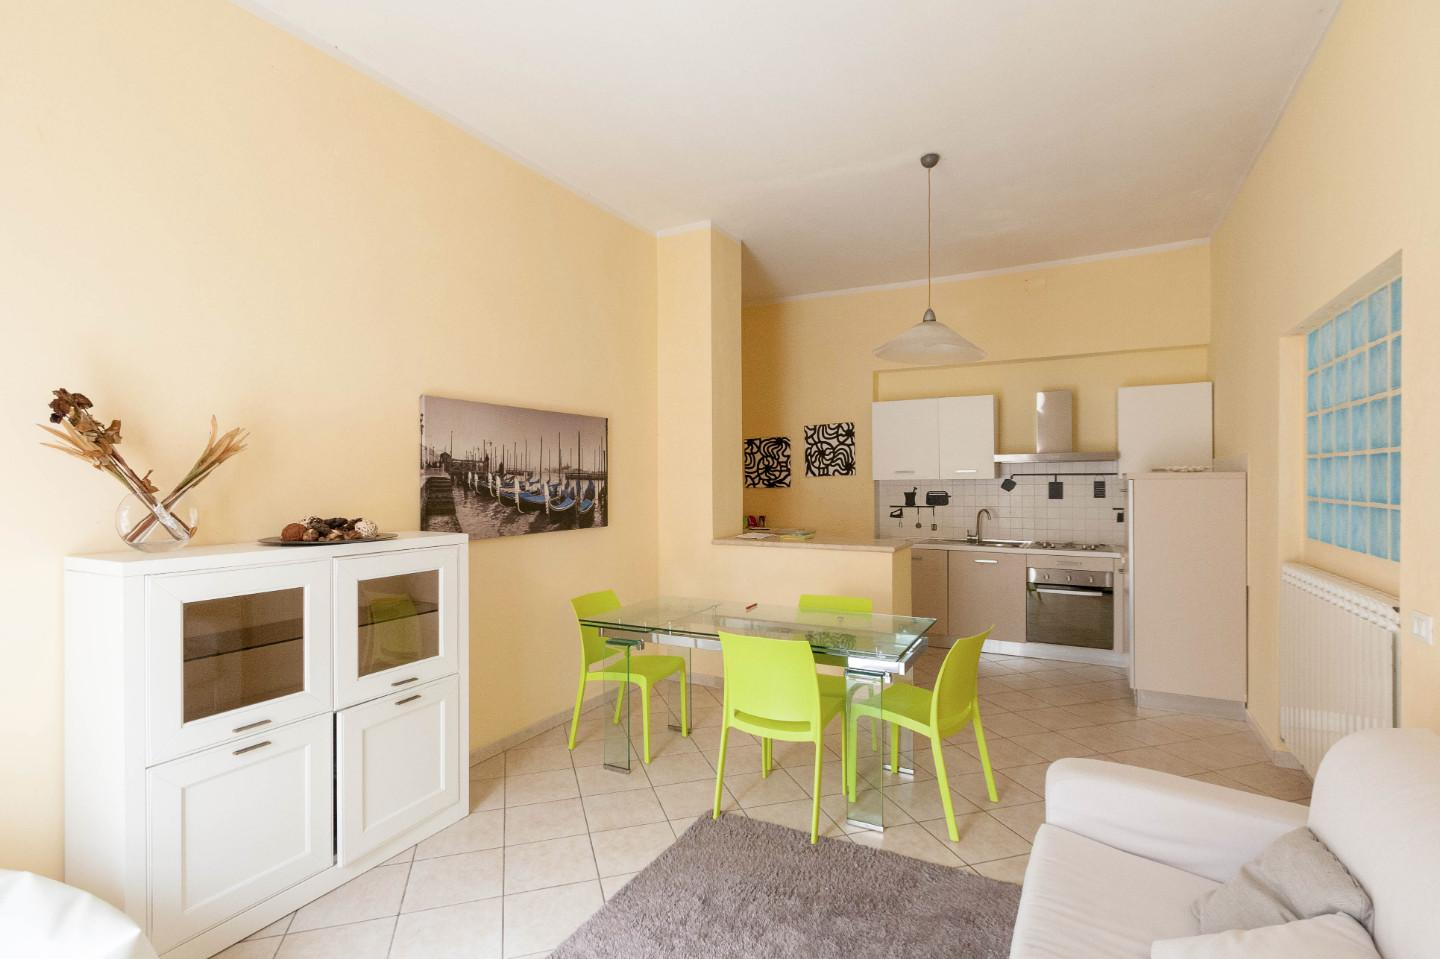 Apartment for sale in Pietrasanta (LU)